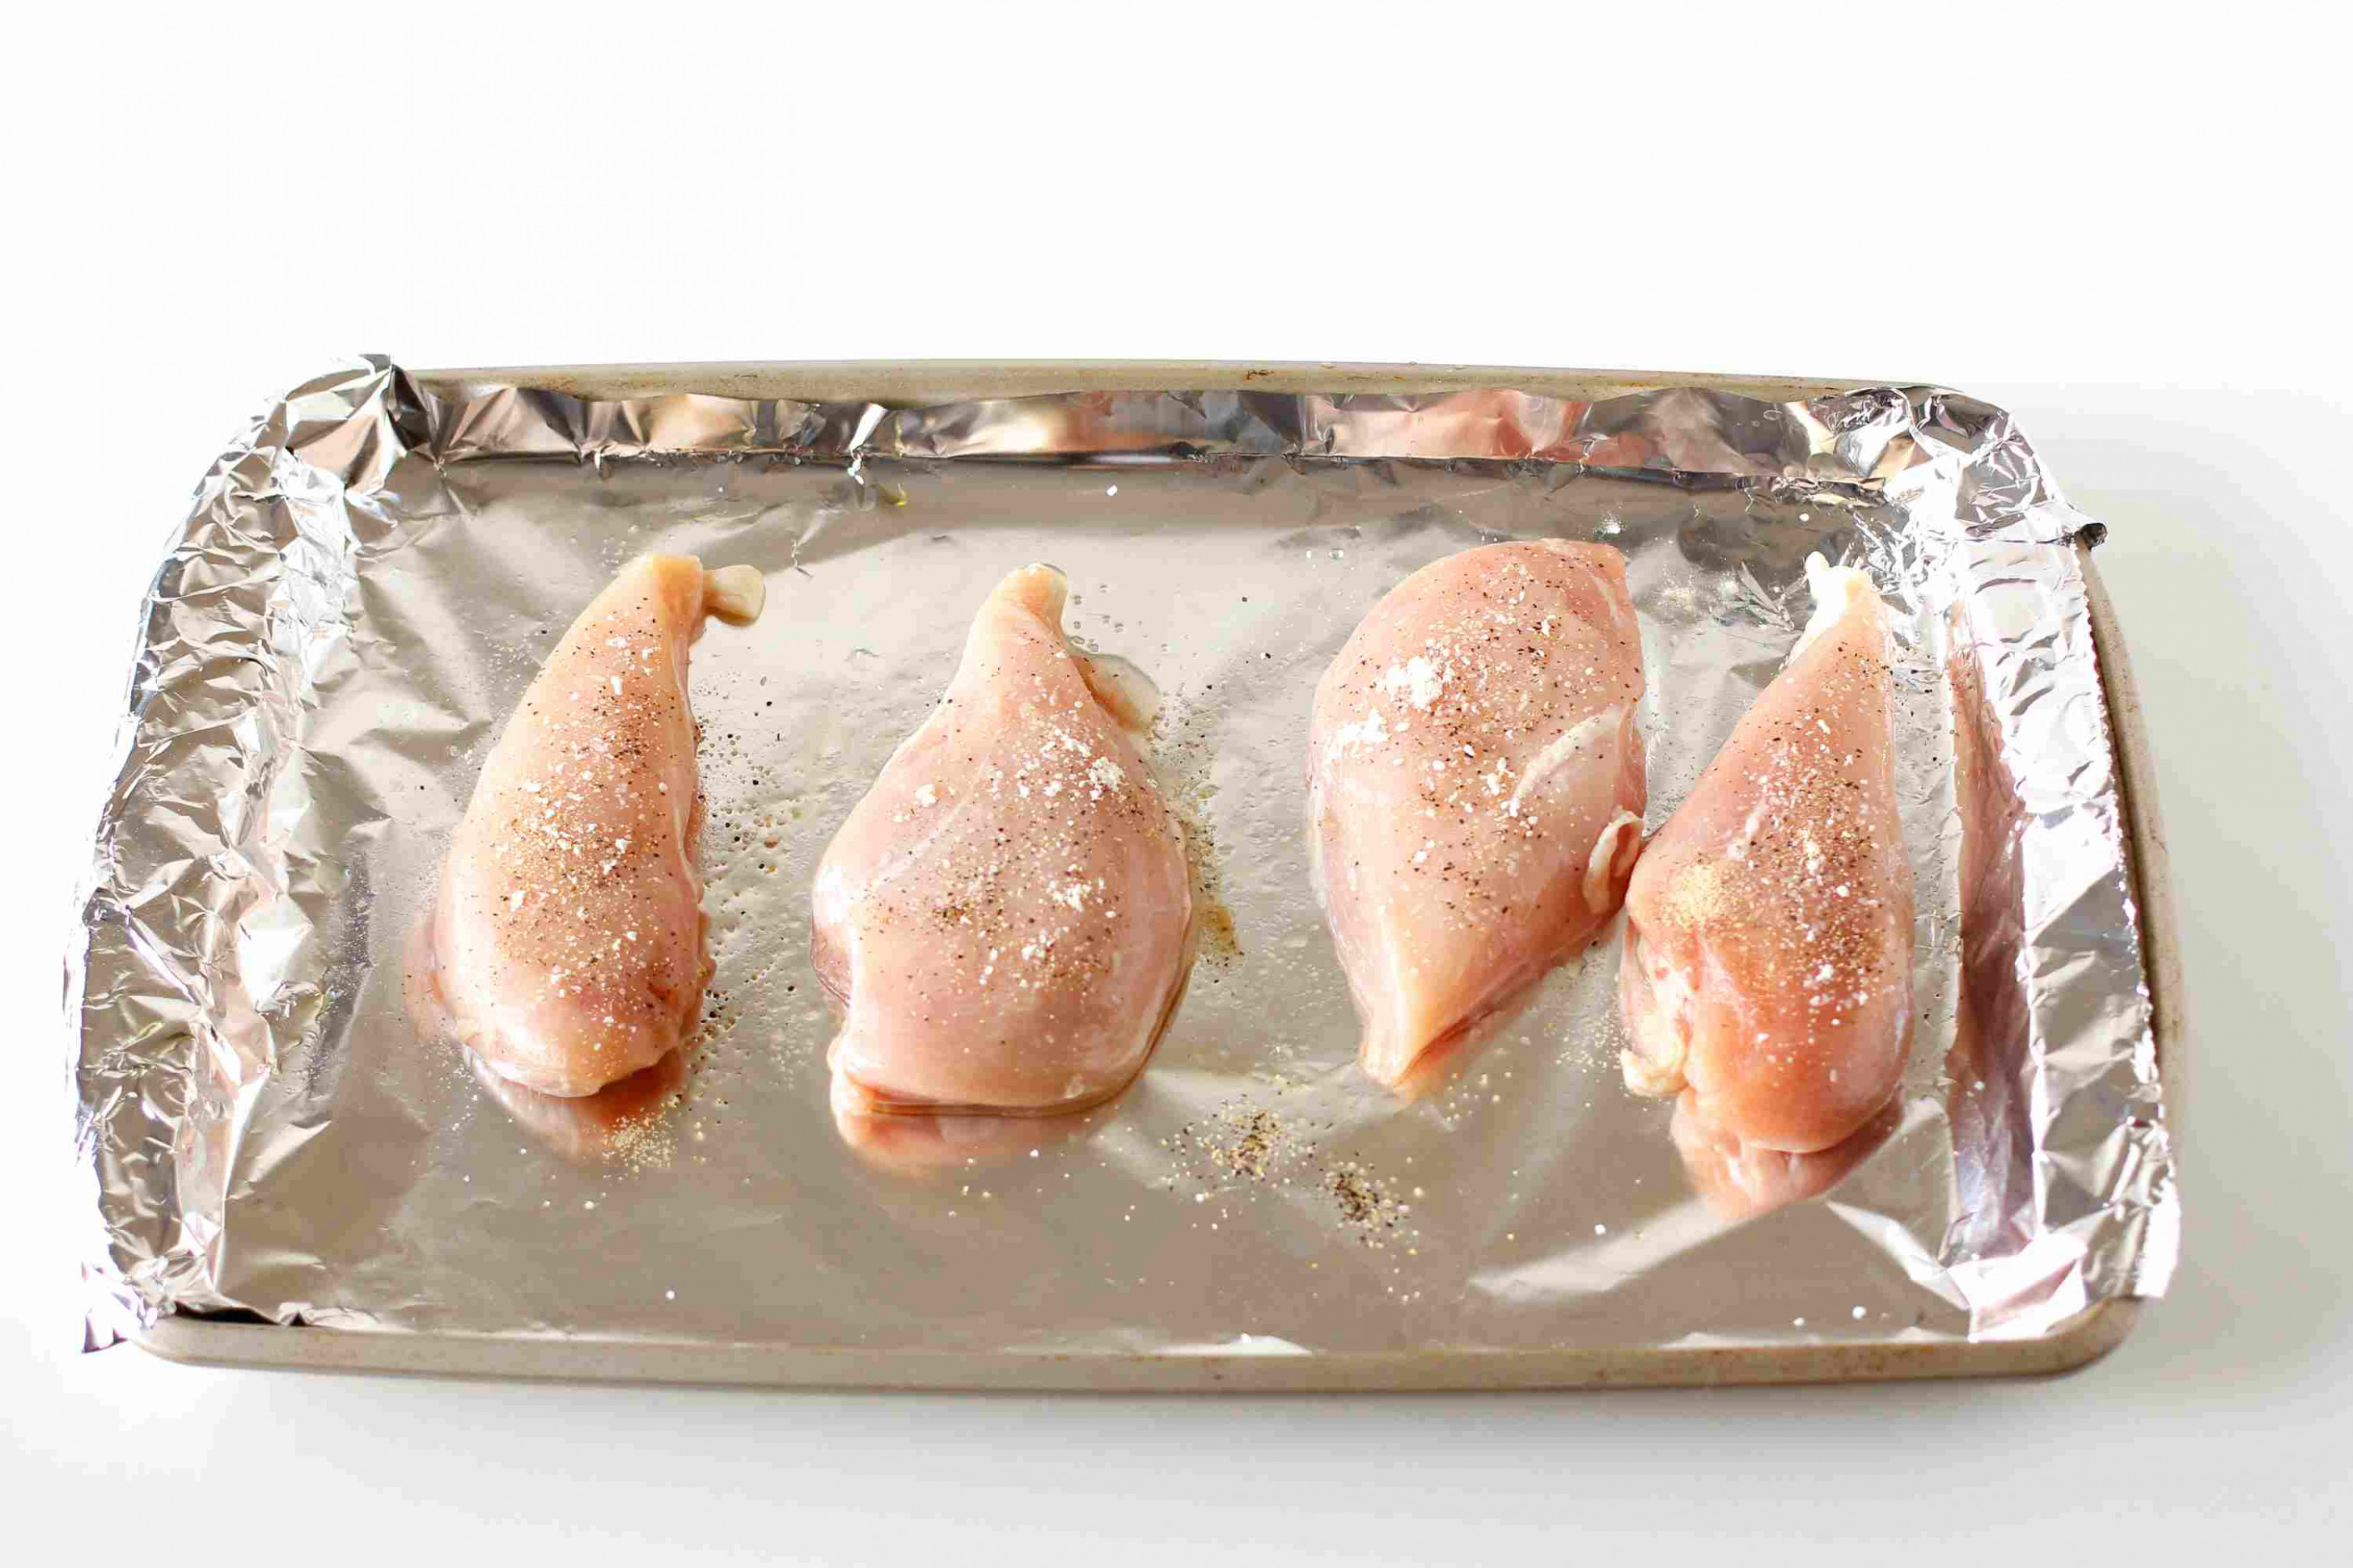 Basic Baked Chicken Breasts Recipe